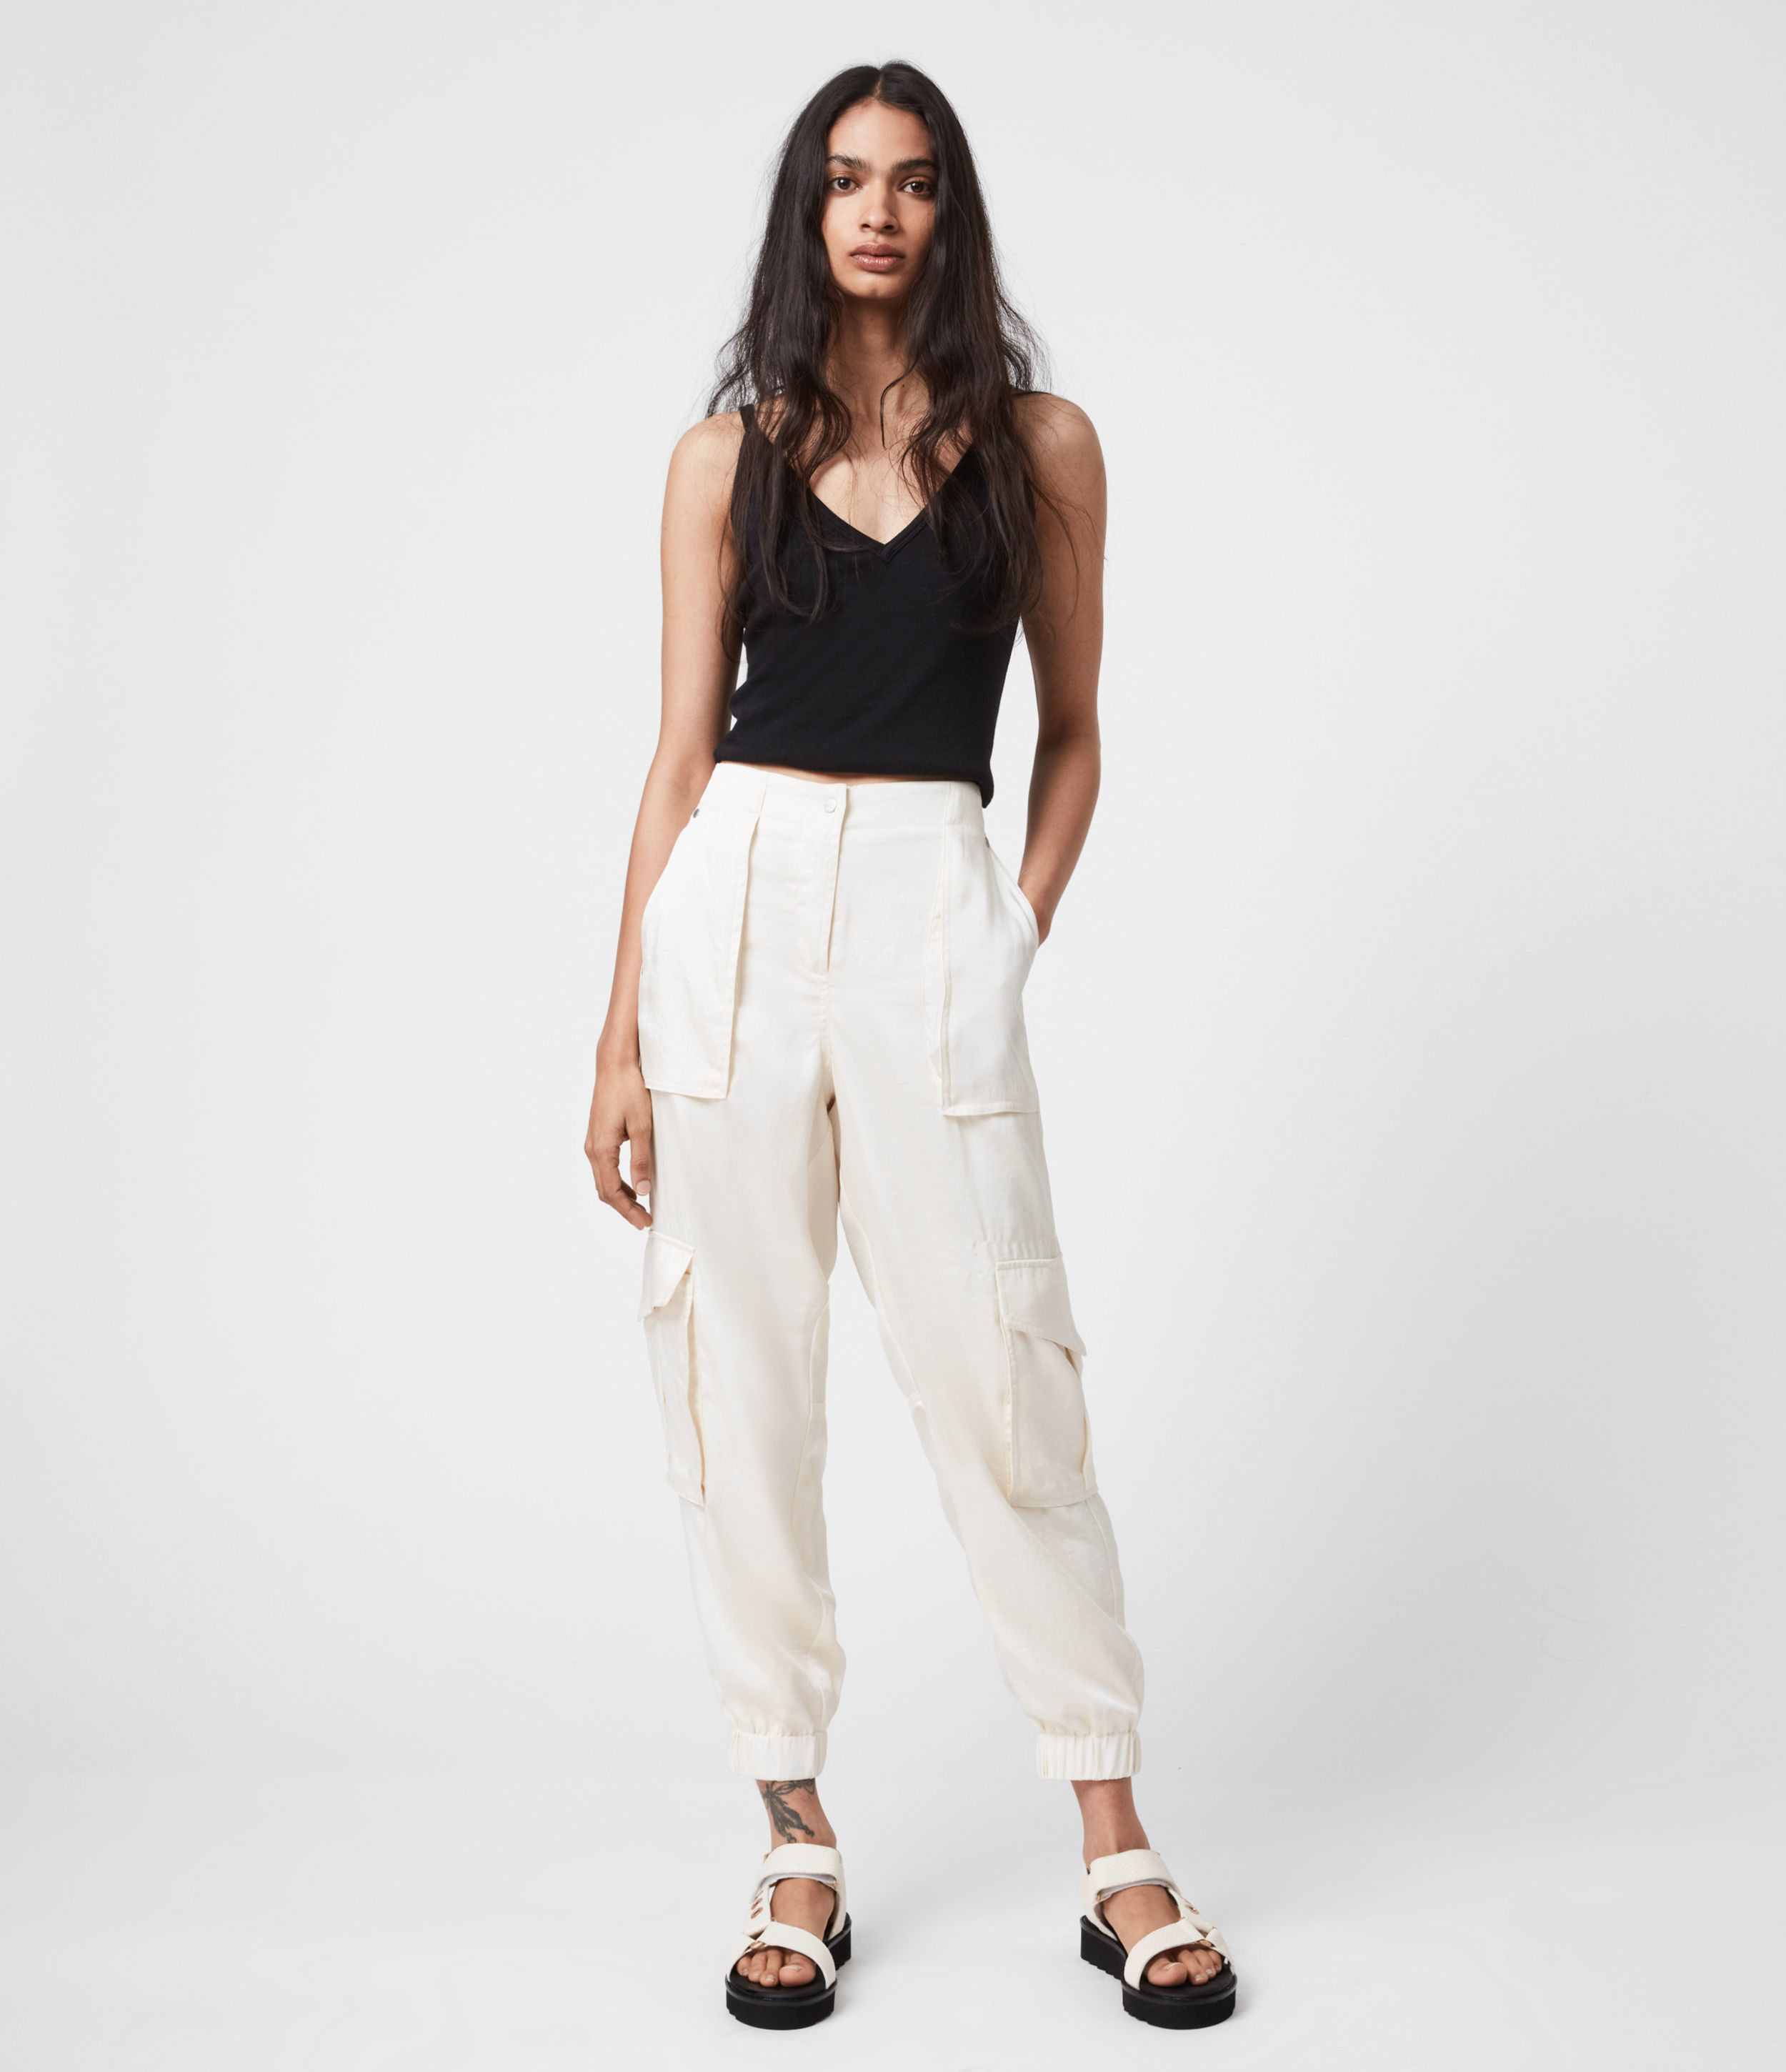 AllSaints Womens Frieda Mid-Rise Cuffed Trousers, Cream White, Size: 12